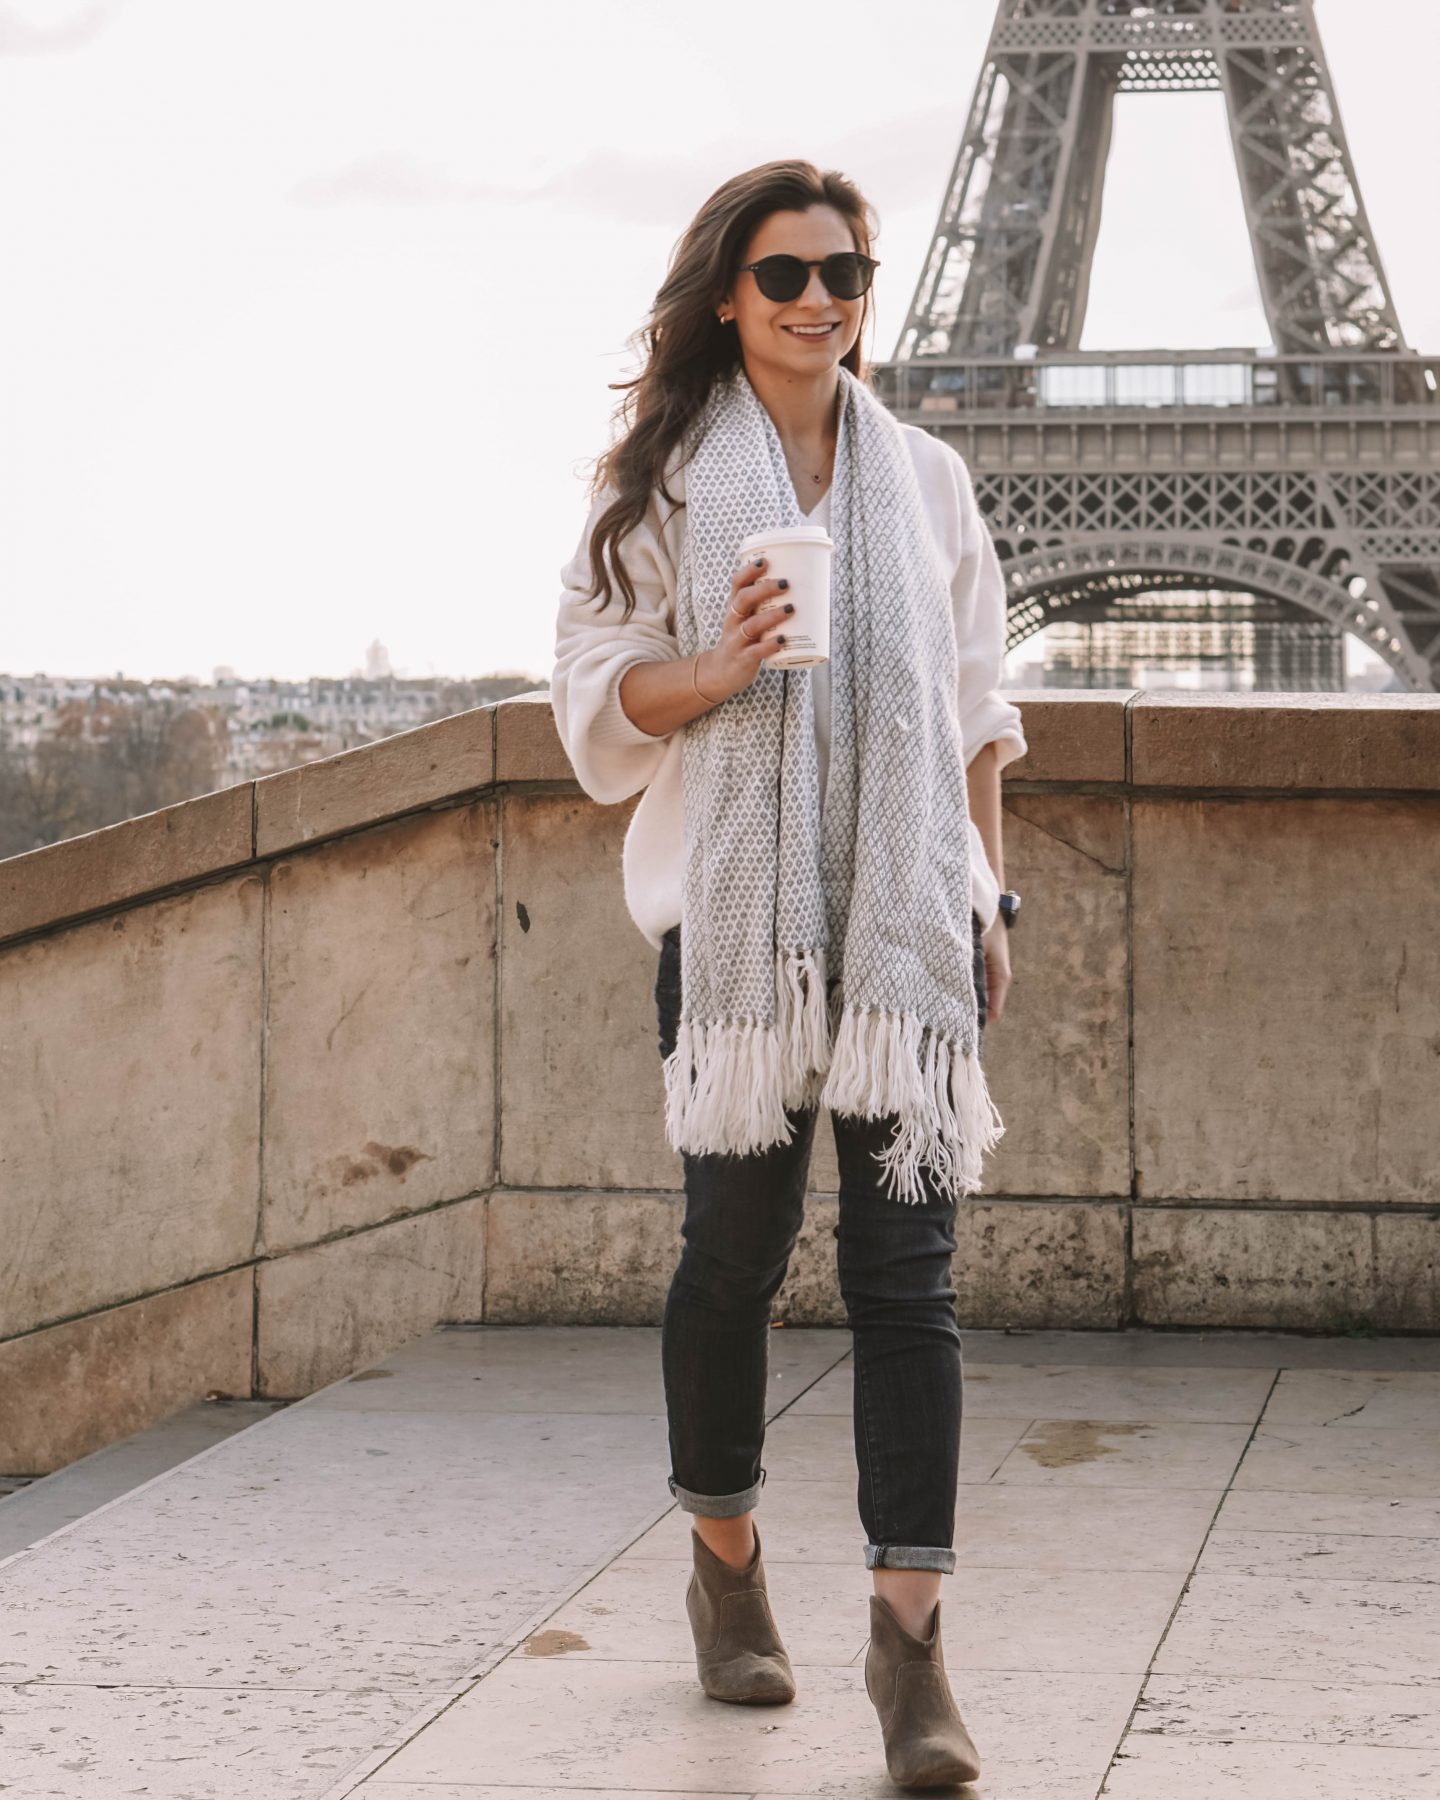 How to dress in the winter in Paris